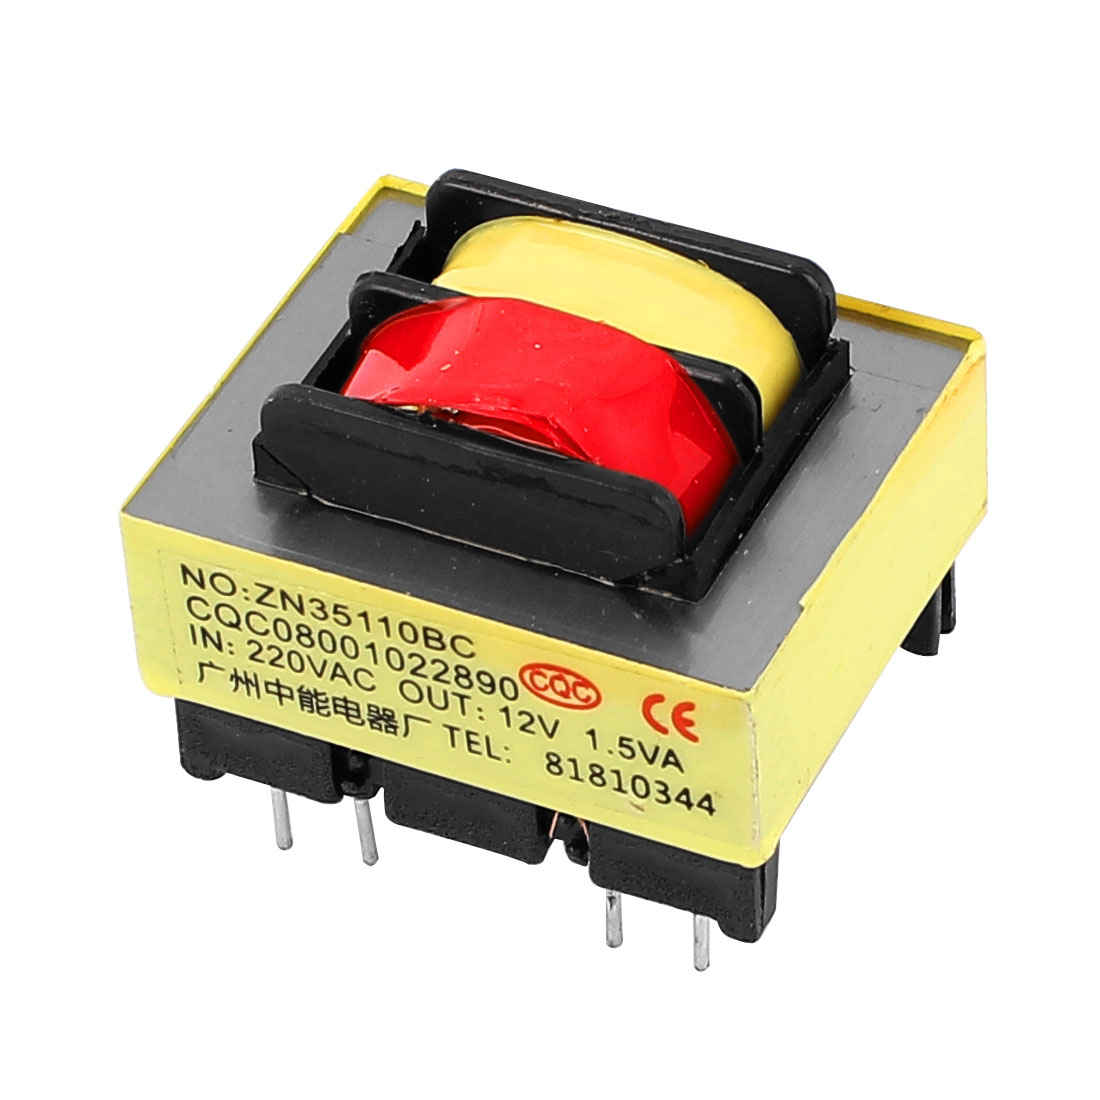 220V Input 12V 1.5W Output Yellow Red Ferrite Core Power Transformer w 5 Terminals